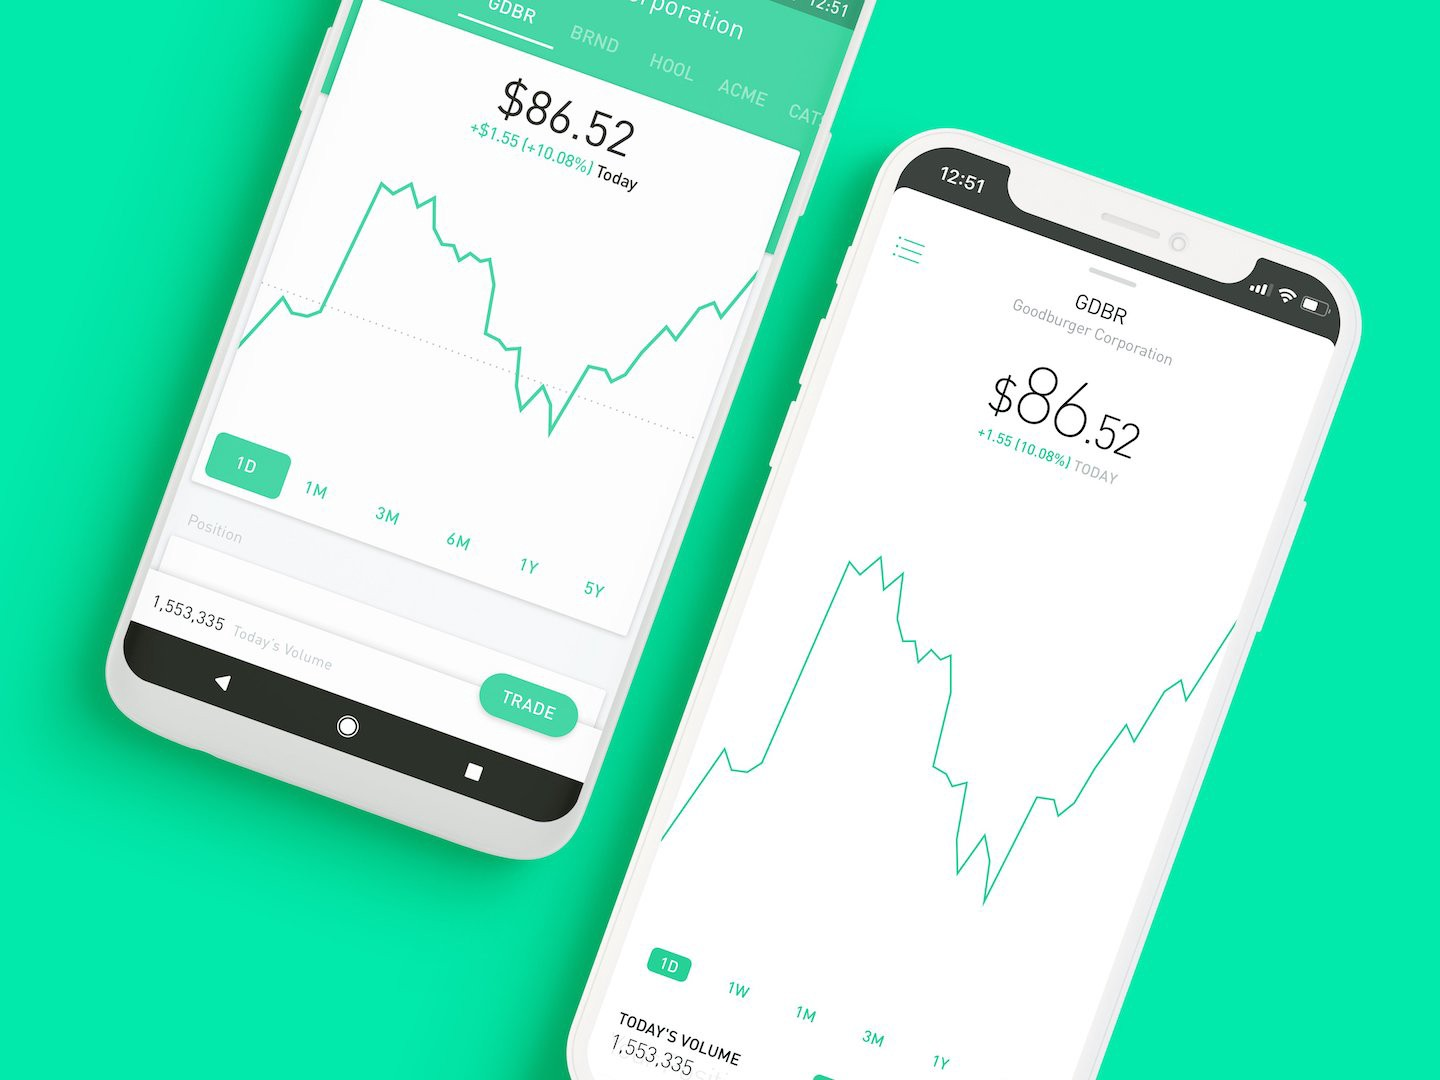 How To Algo Trade With Robinhood